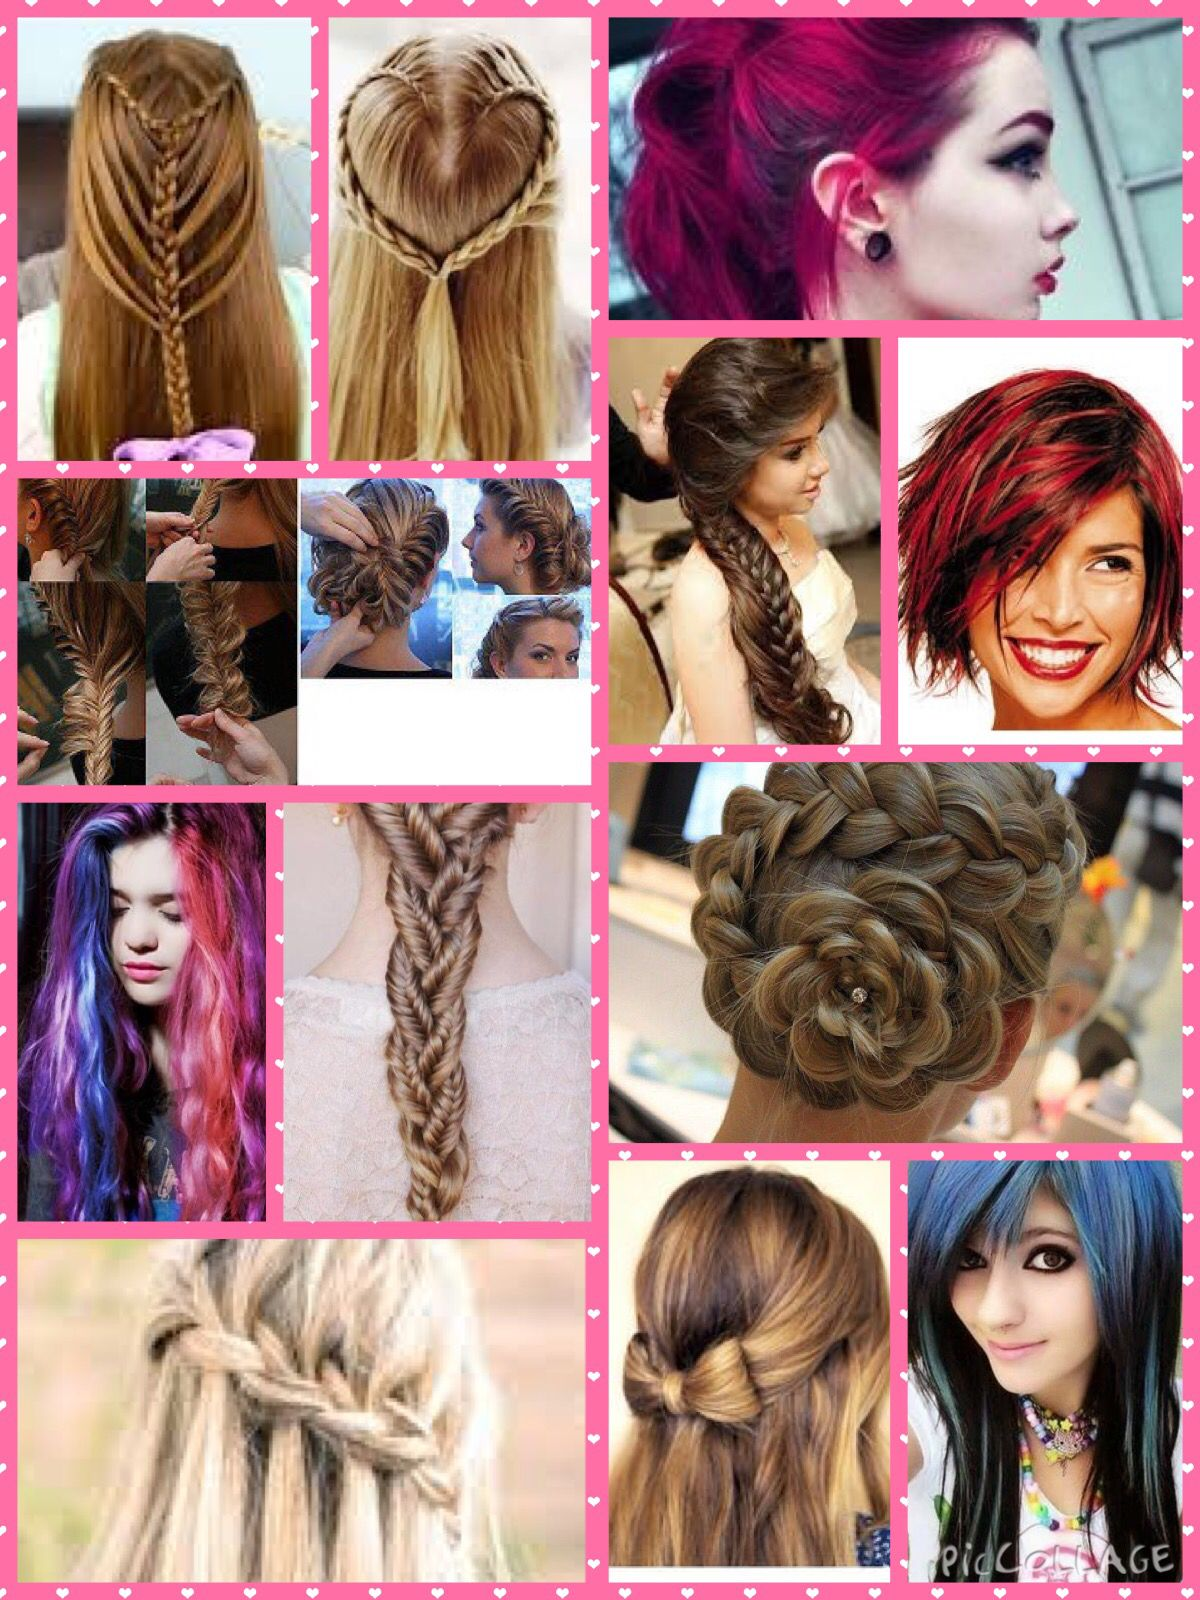 This Is A Collage I Made Beauty Hair Styles Beauty Women